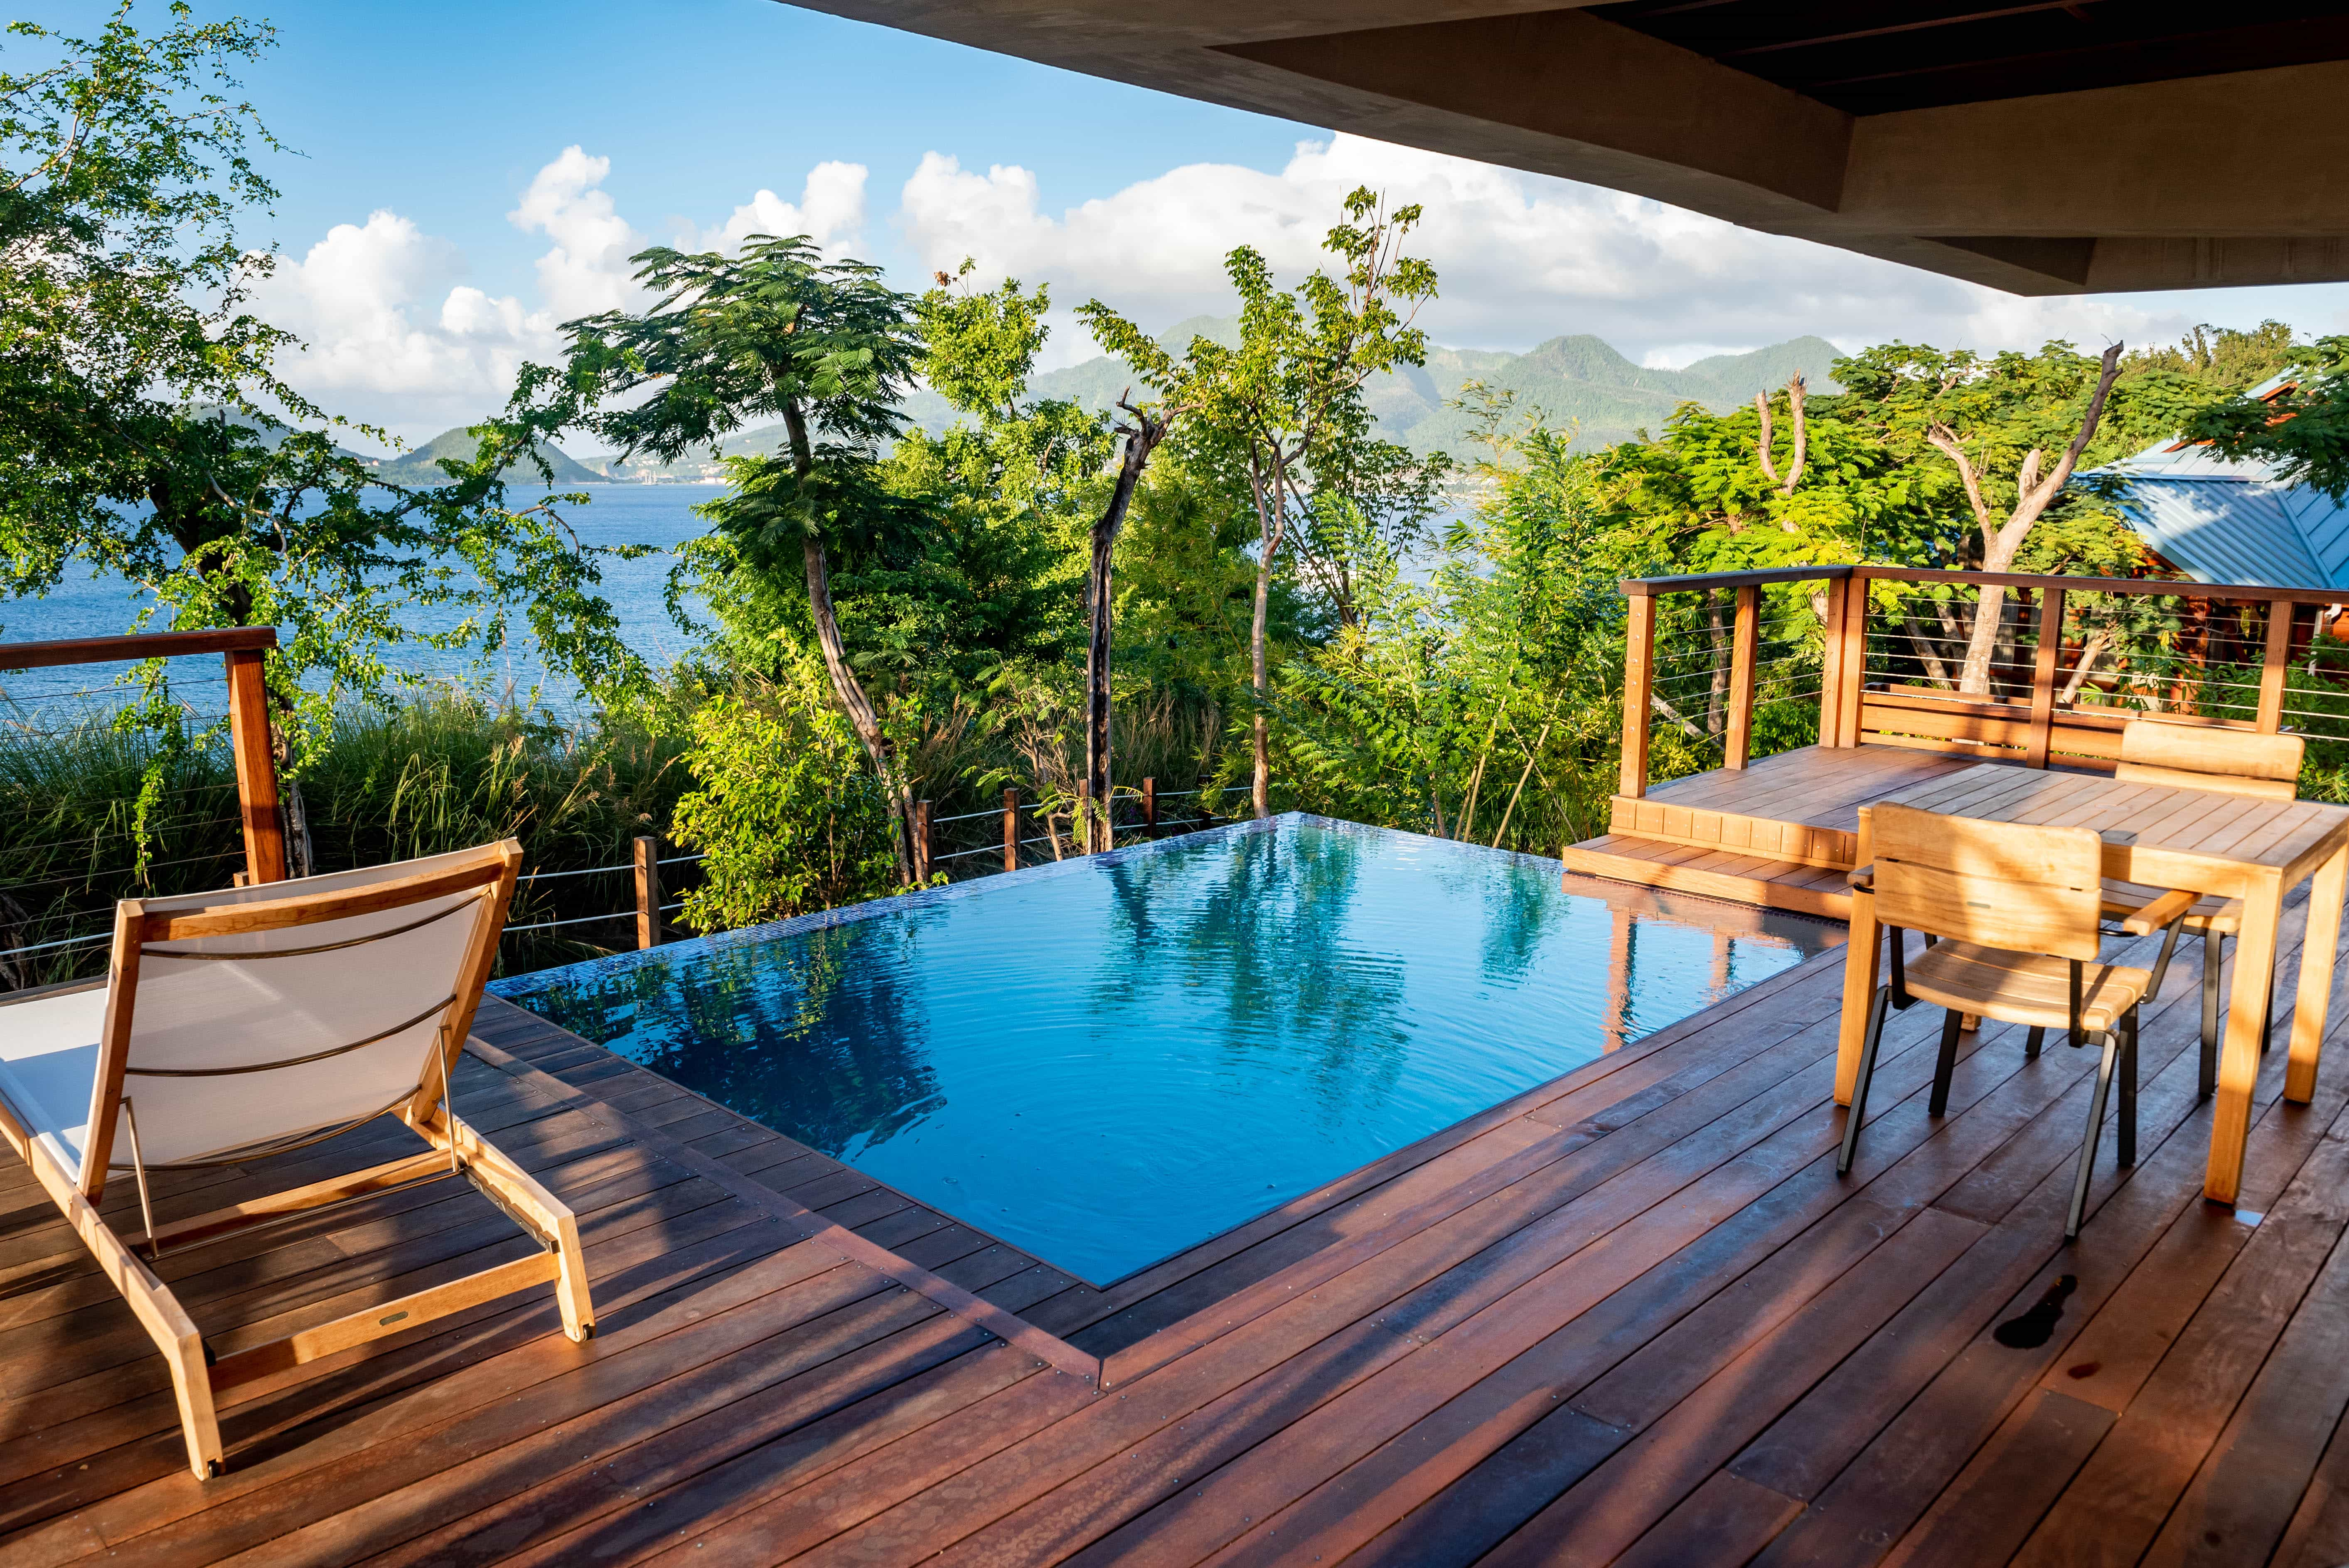 Each villa comes equipped with a plunge pool discreetly tucked behind foliage. What you do with it, is up to you!